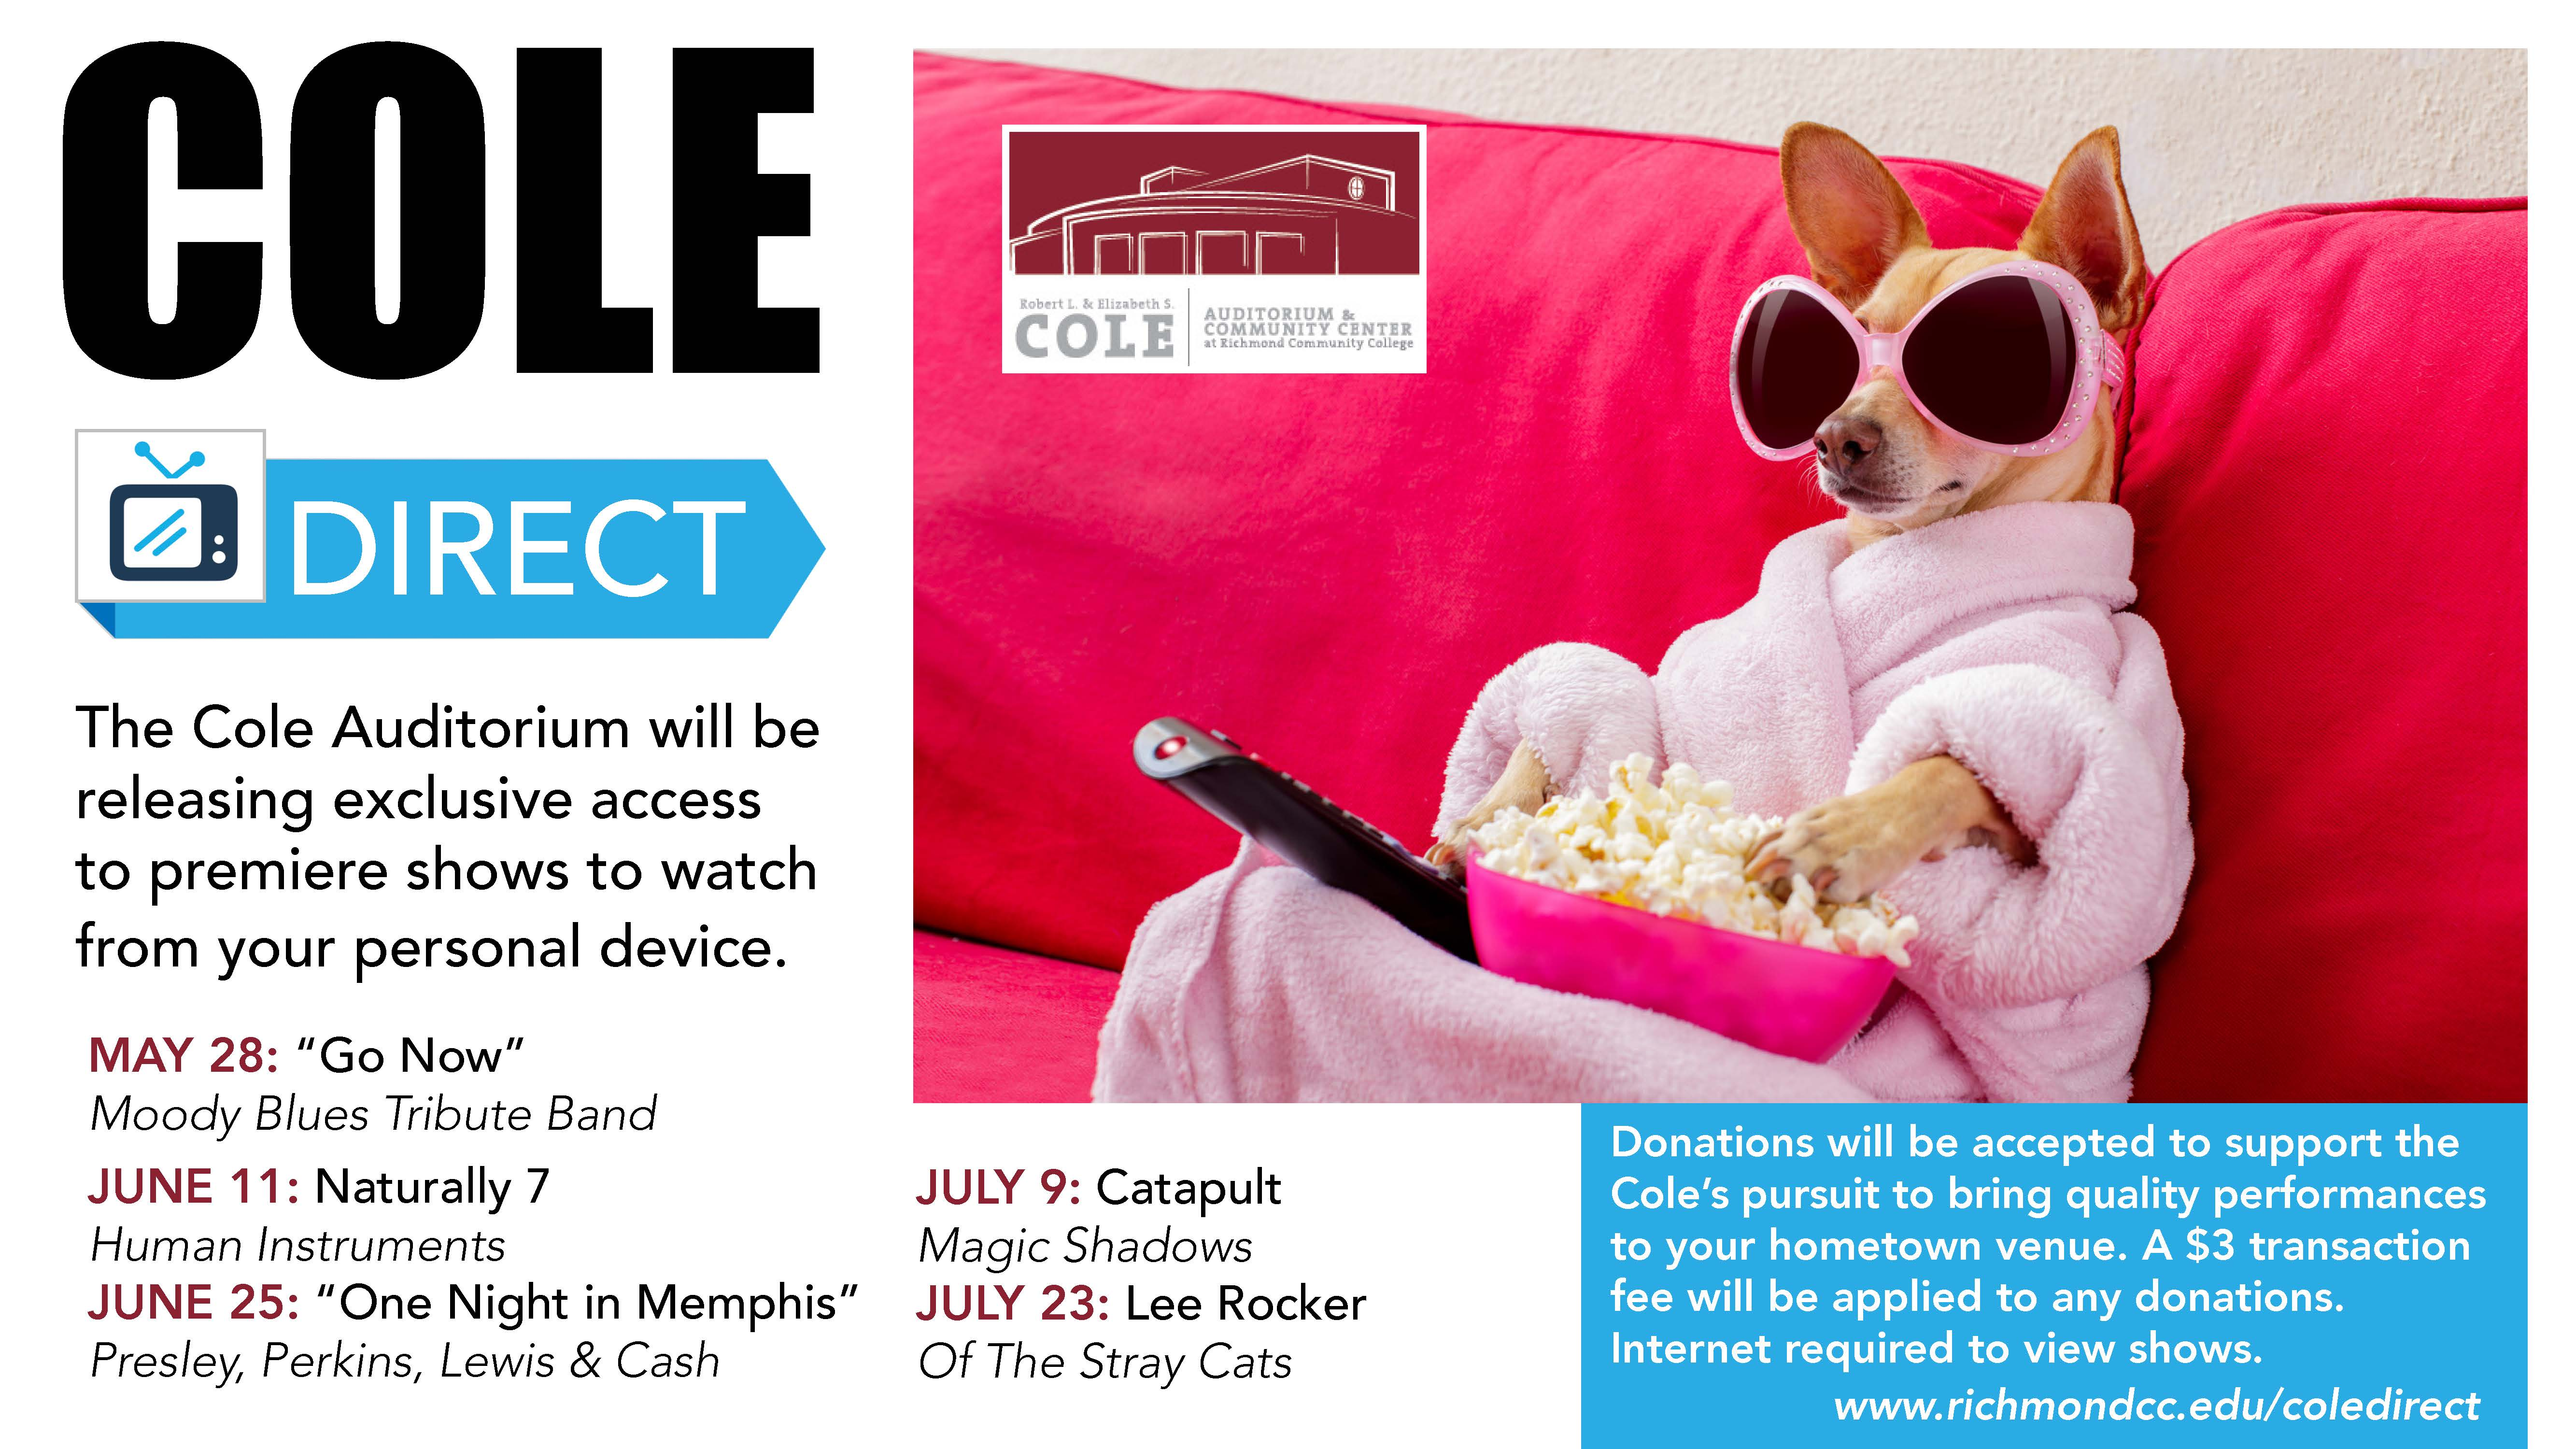 Cole Direct logo and show schedule with dog in pink robe with a TV remote and bowl of popcorn